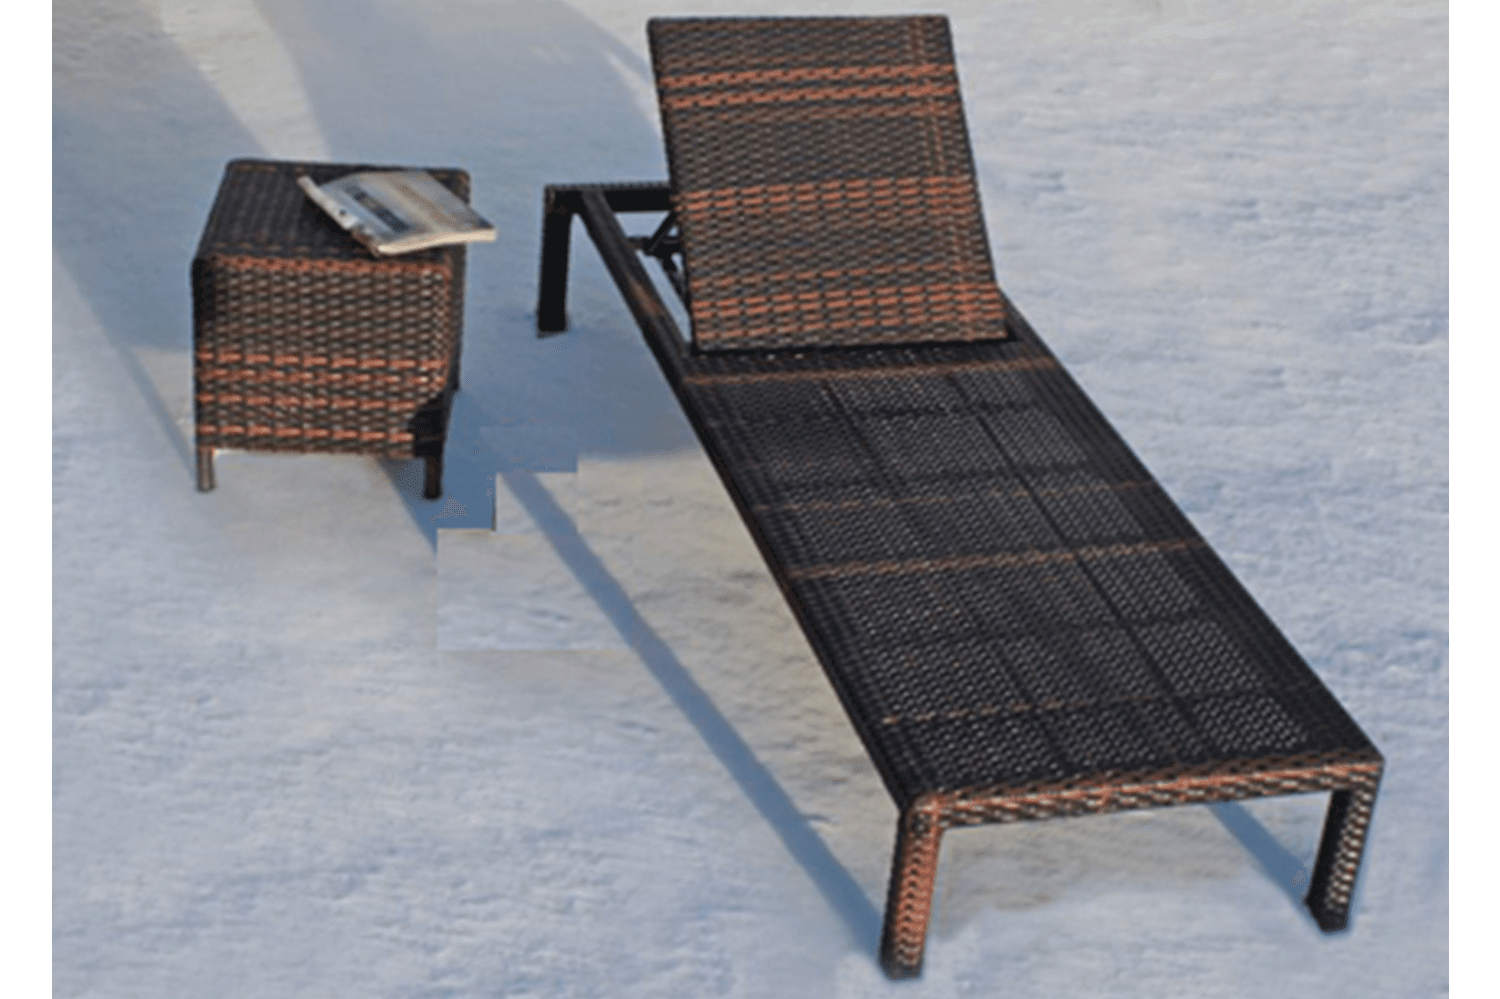 4.sun-bed-_-small-table_swimming-pool-area_hotel-furniture_equipment-project-(1)